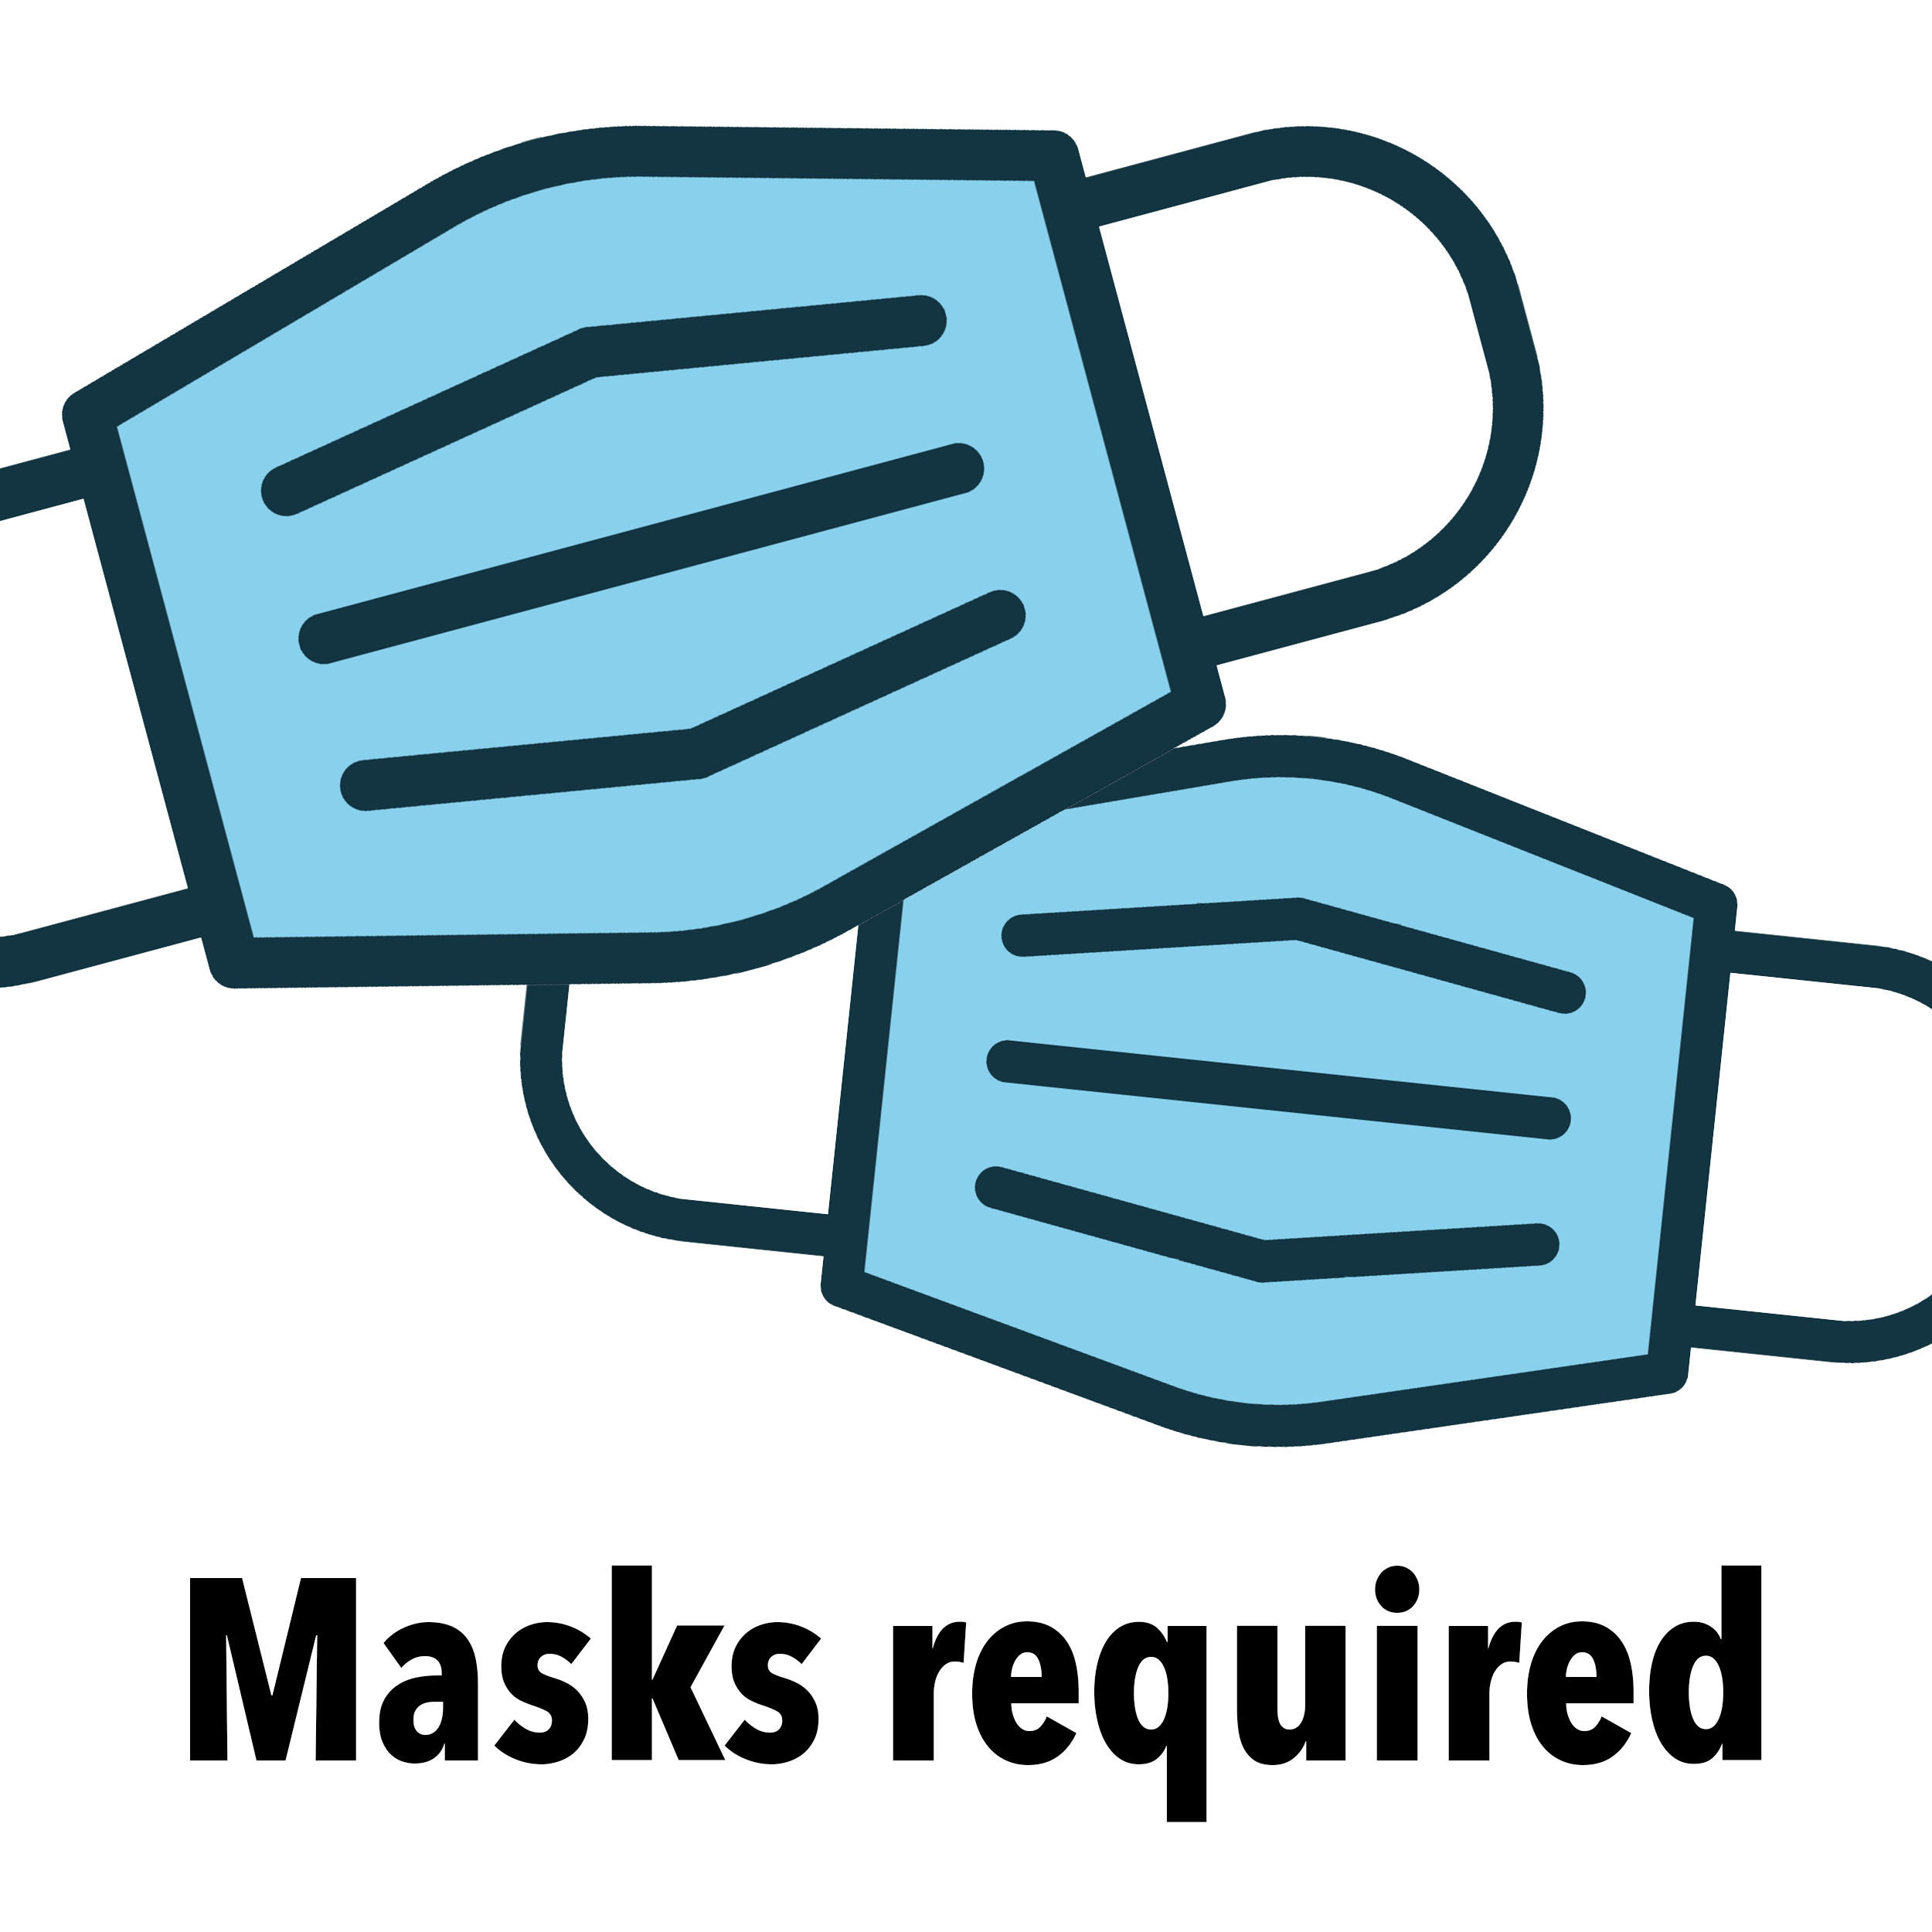 Please wear a mask in the building web graphic 2